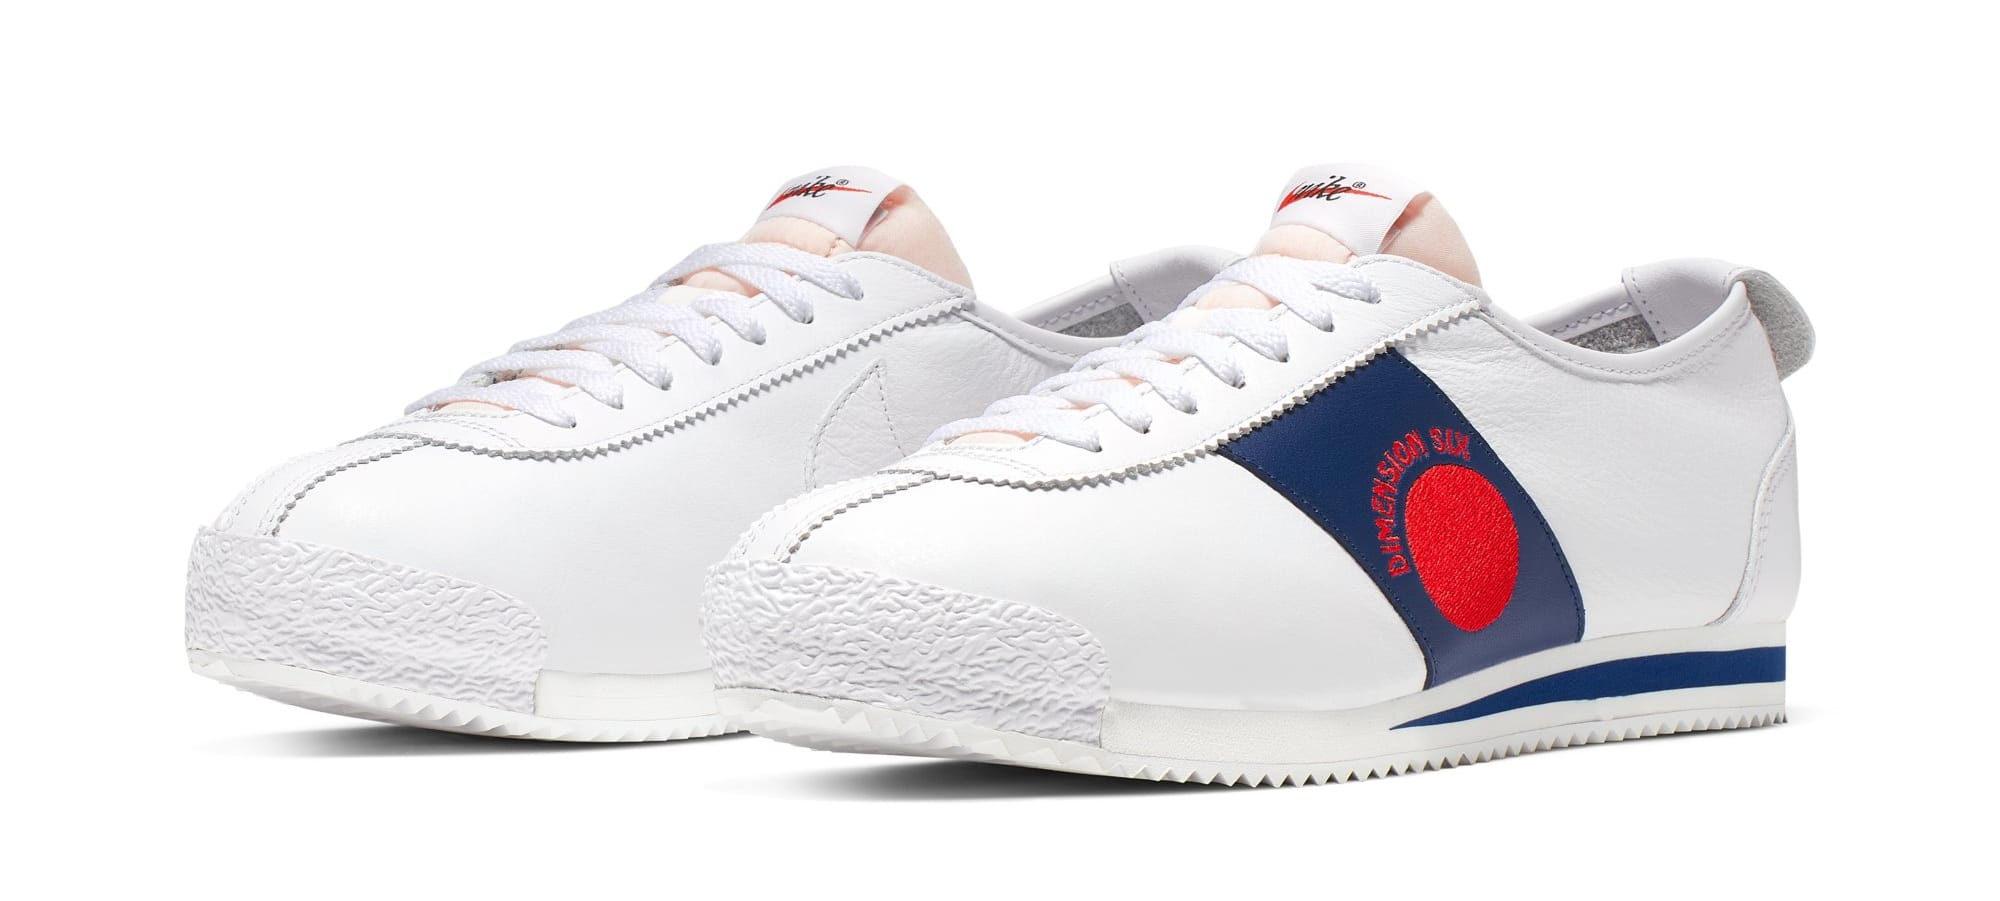 Nike Classic Cortez 'Shoe Dog Pack (Dimension Six)' CJ2586-101 (Lateral)